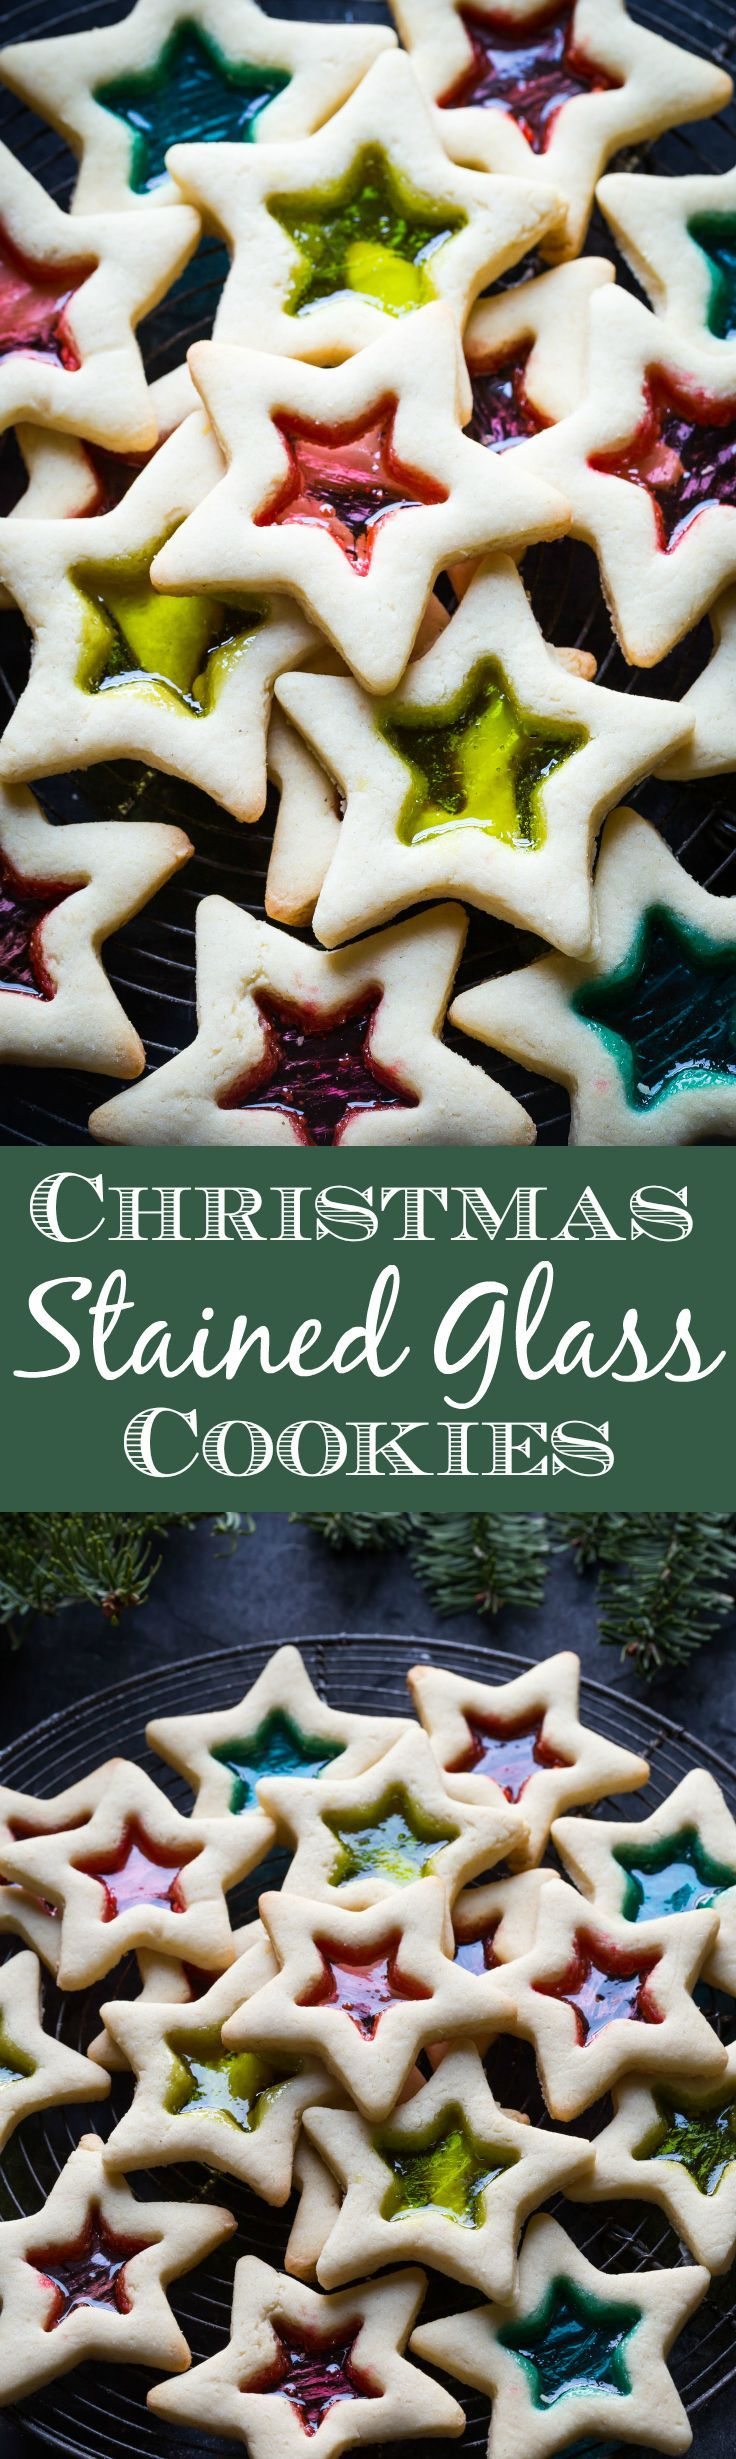 Simply gorgeous Gluten Free Christmas Cookies with Stained Glass. You can can make these with your kids, they are SO easy!